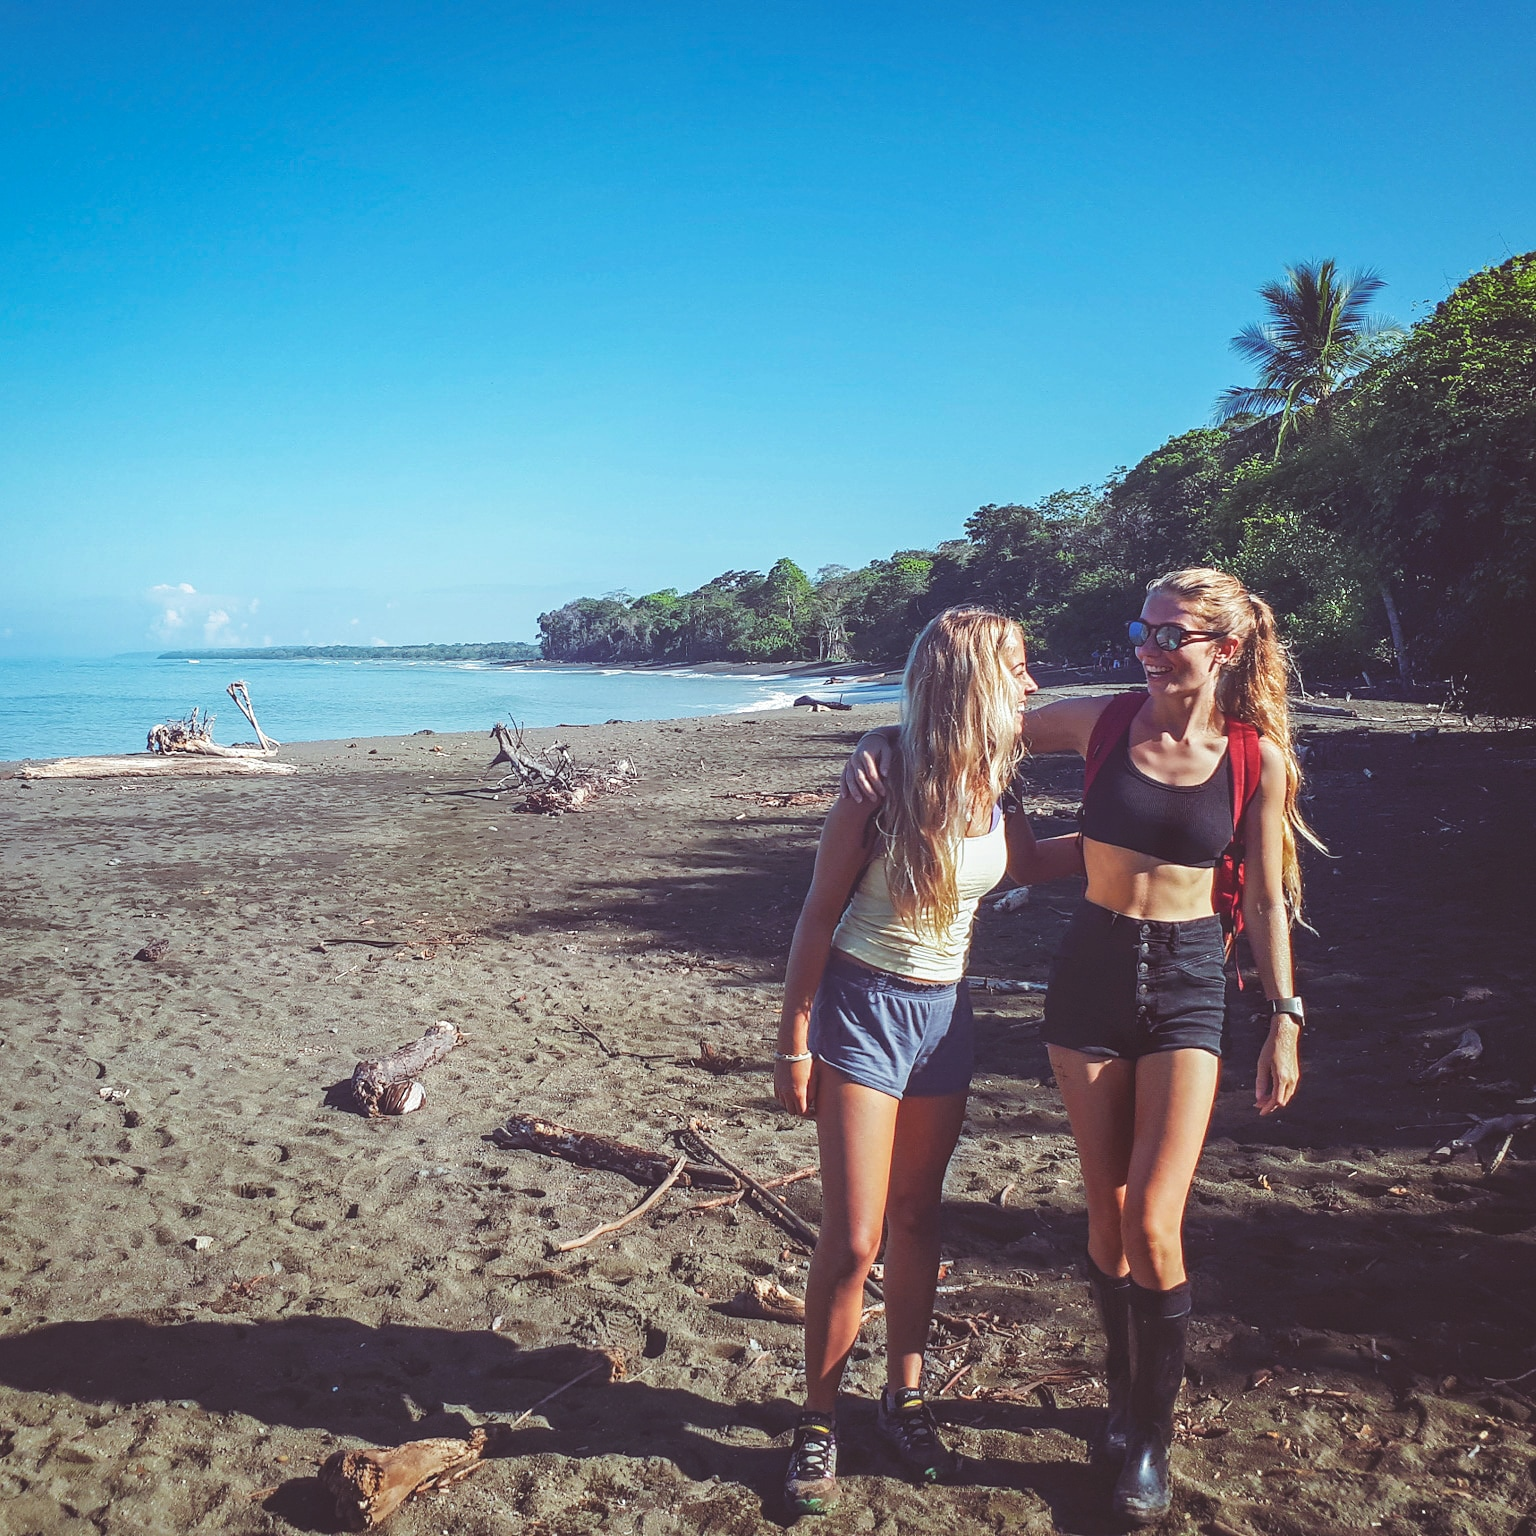 Work exchange in Costa Rica: Do you like writing a lot? Is it